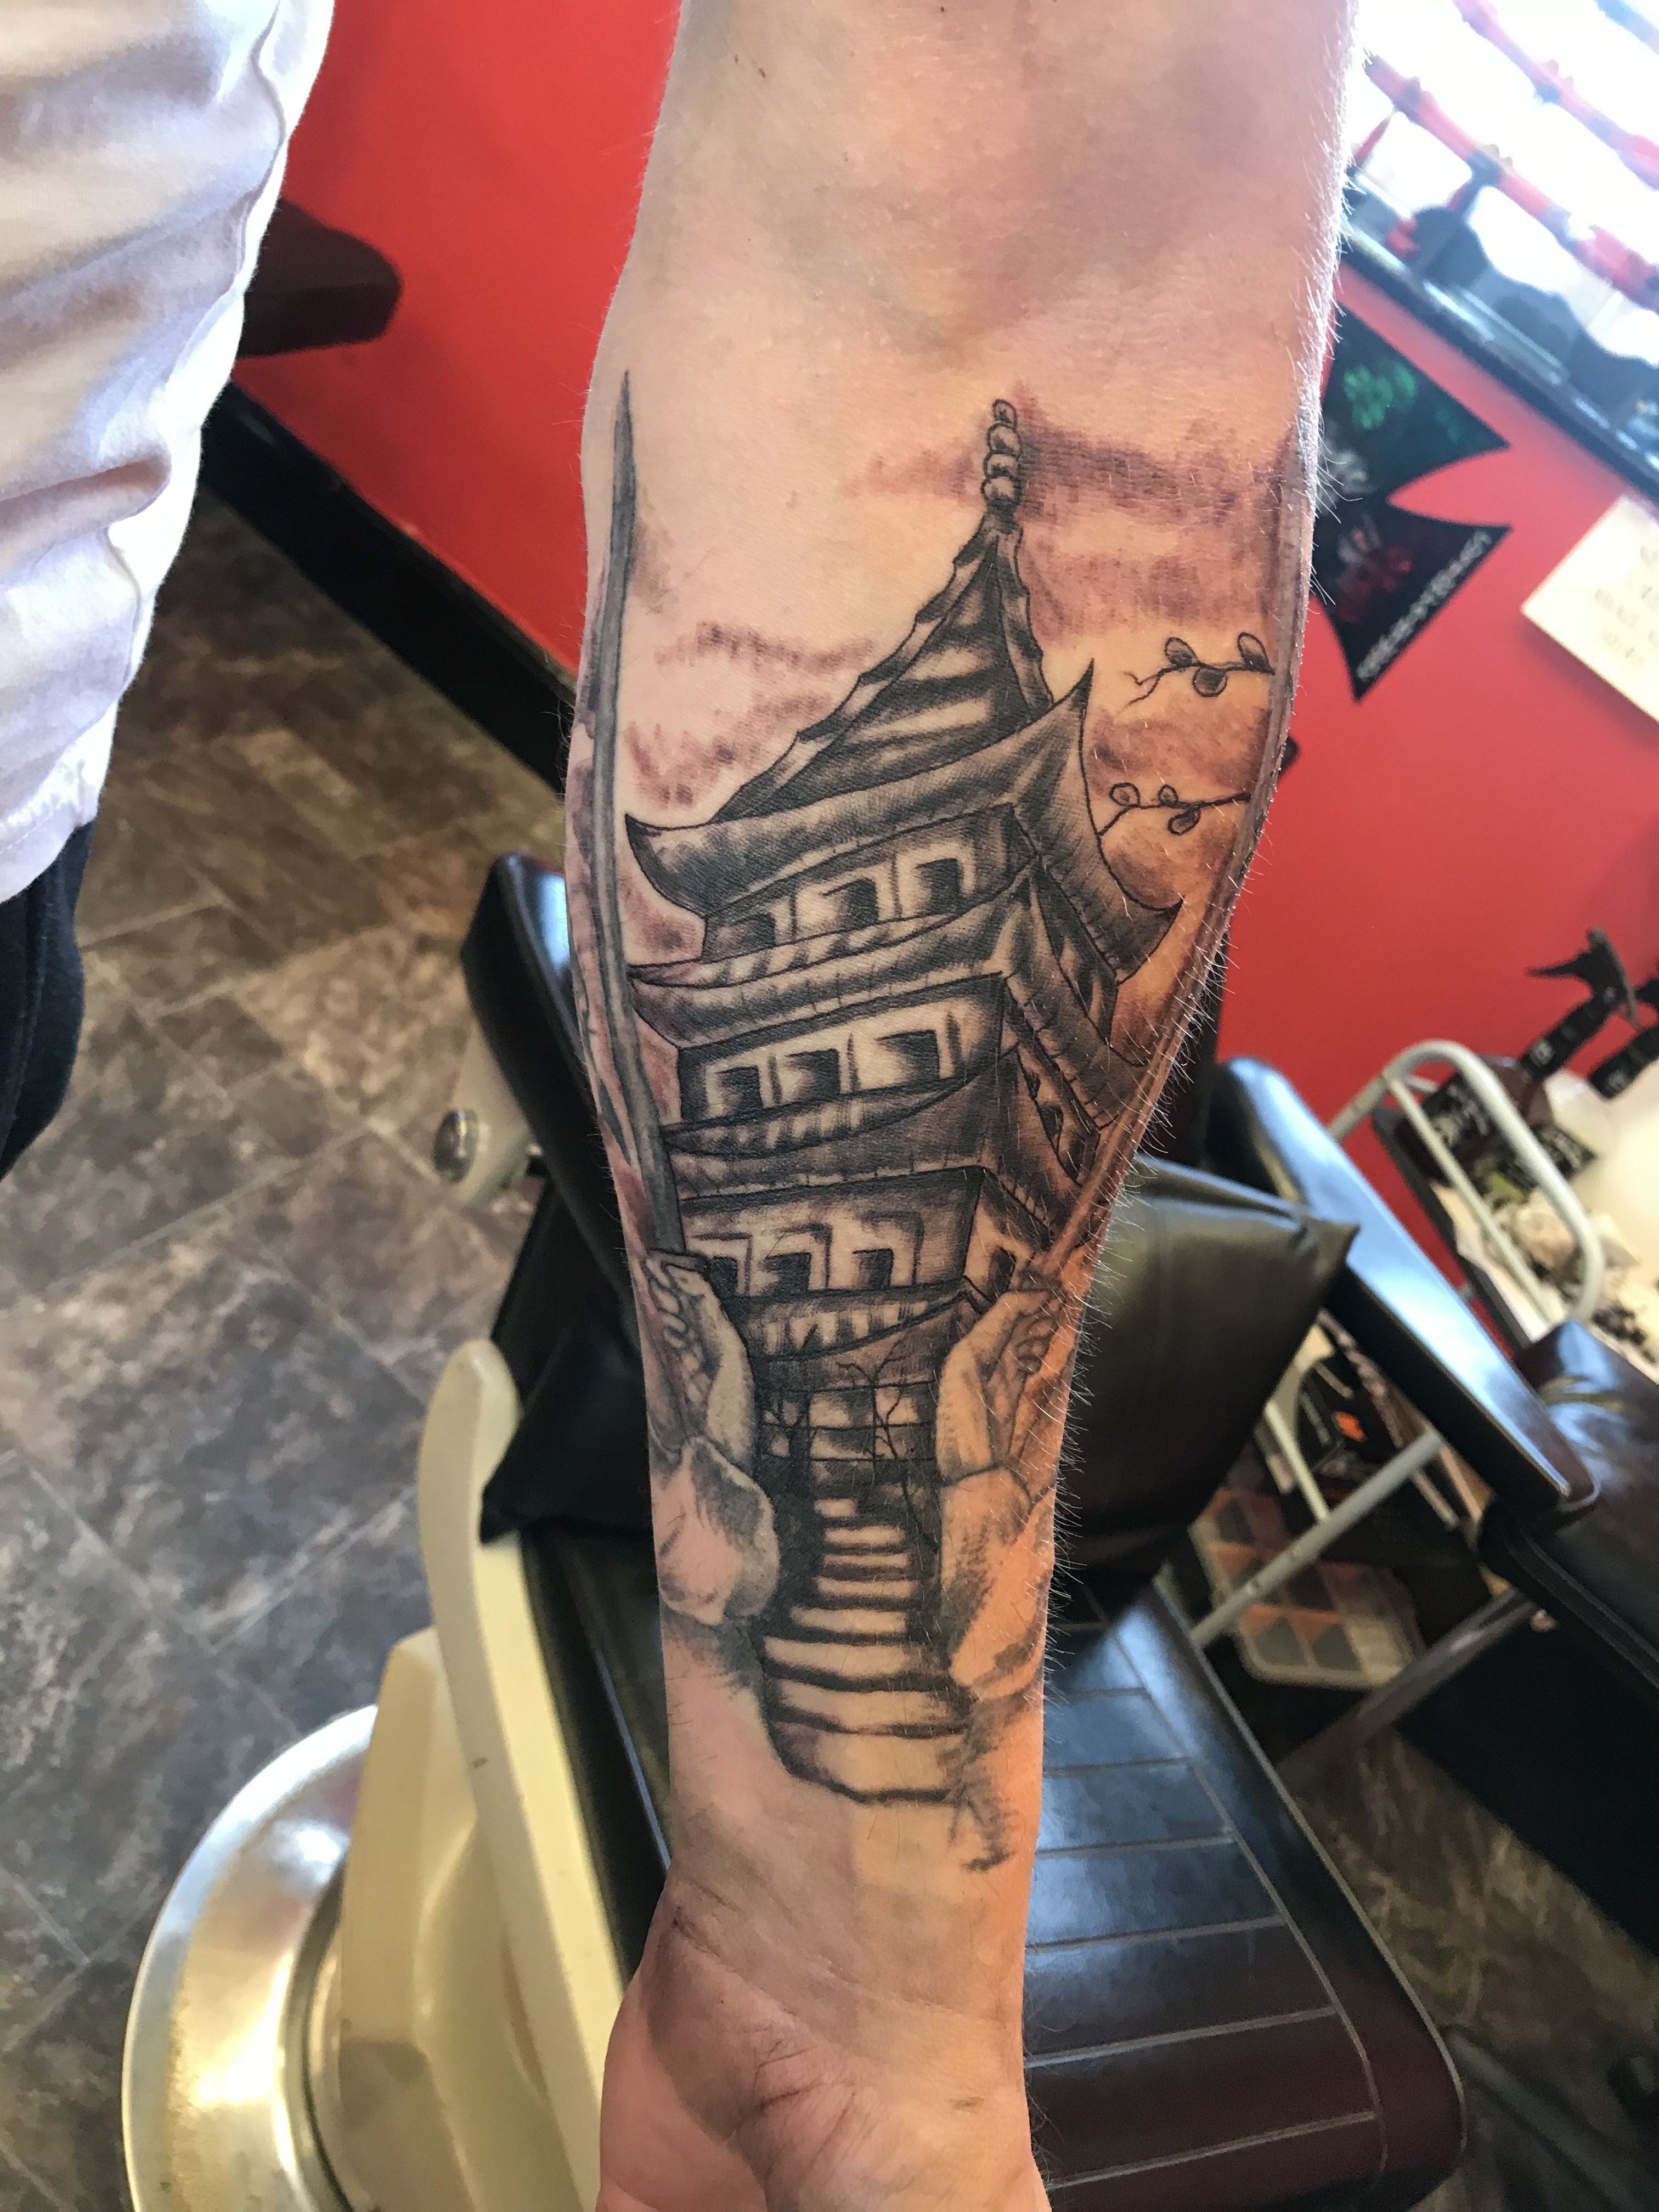 033991c29 Pin by Dave Richardson on Latest tattoos I've done | Pinterest | Latest  tattoos and Tattoos